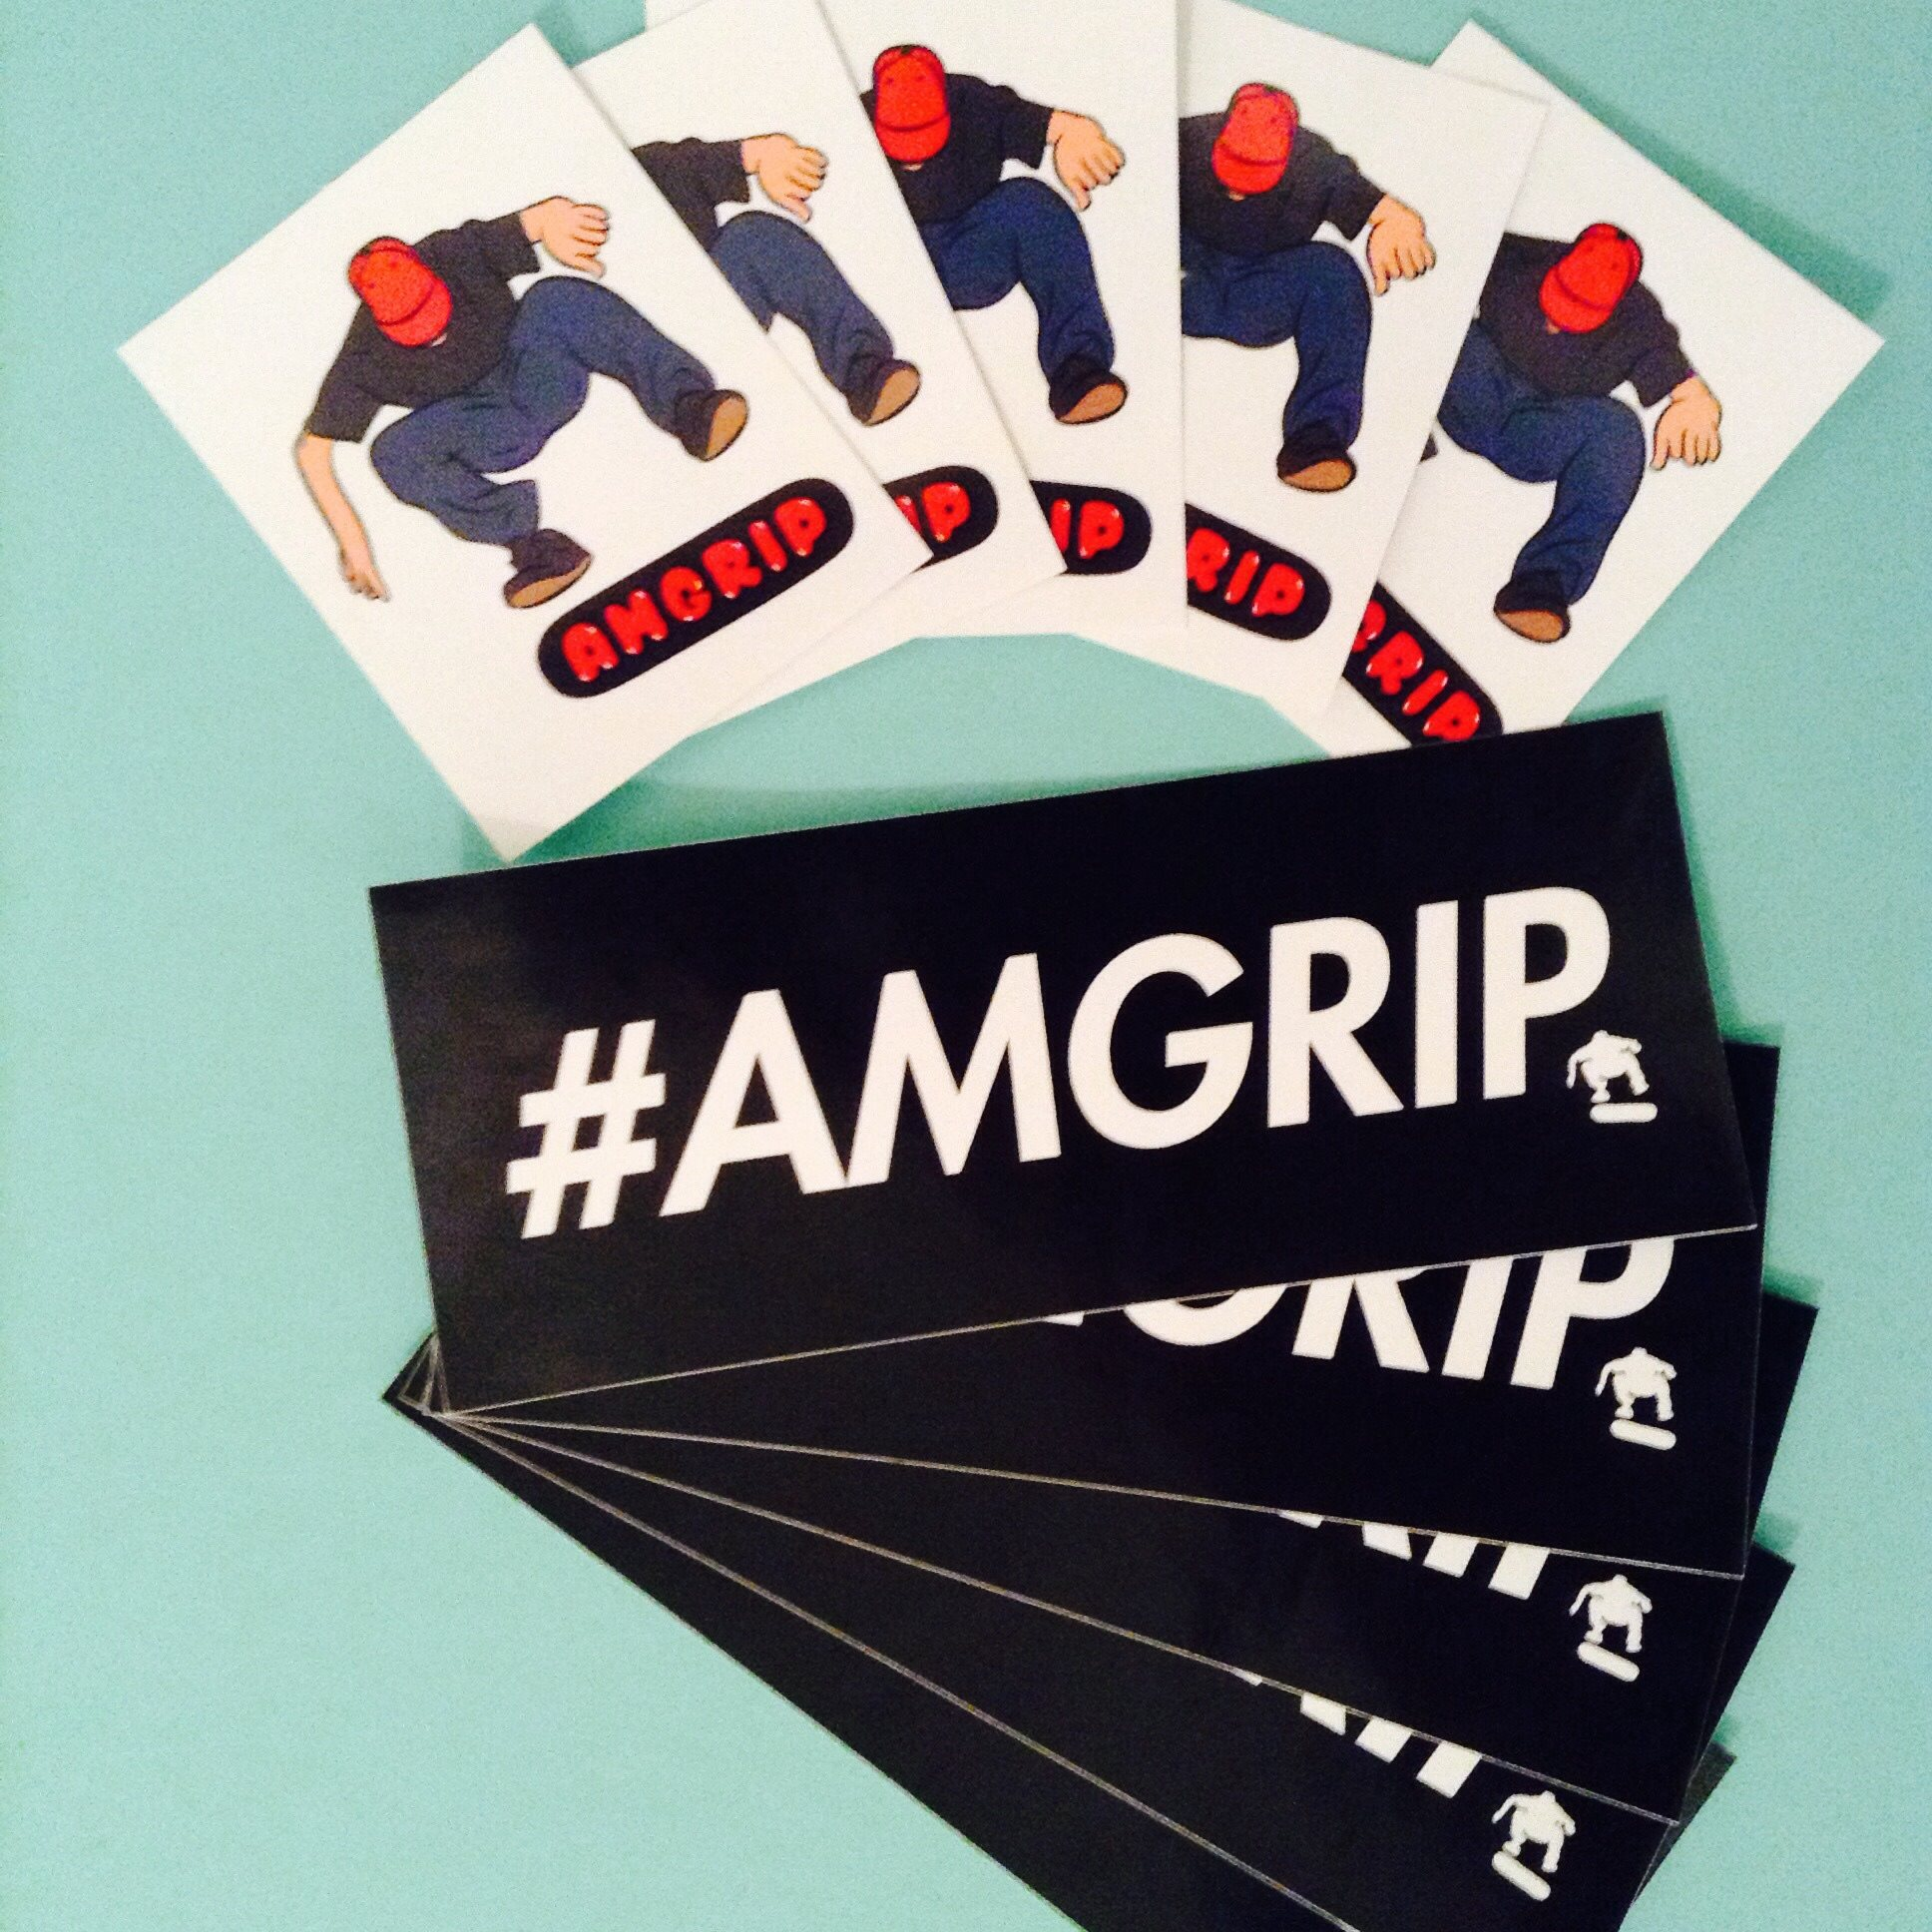 Amgrip Sticker Pack